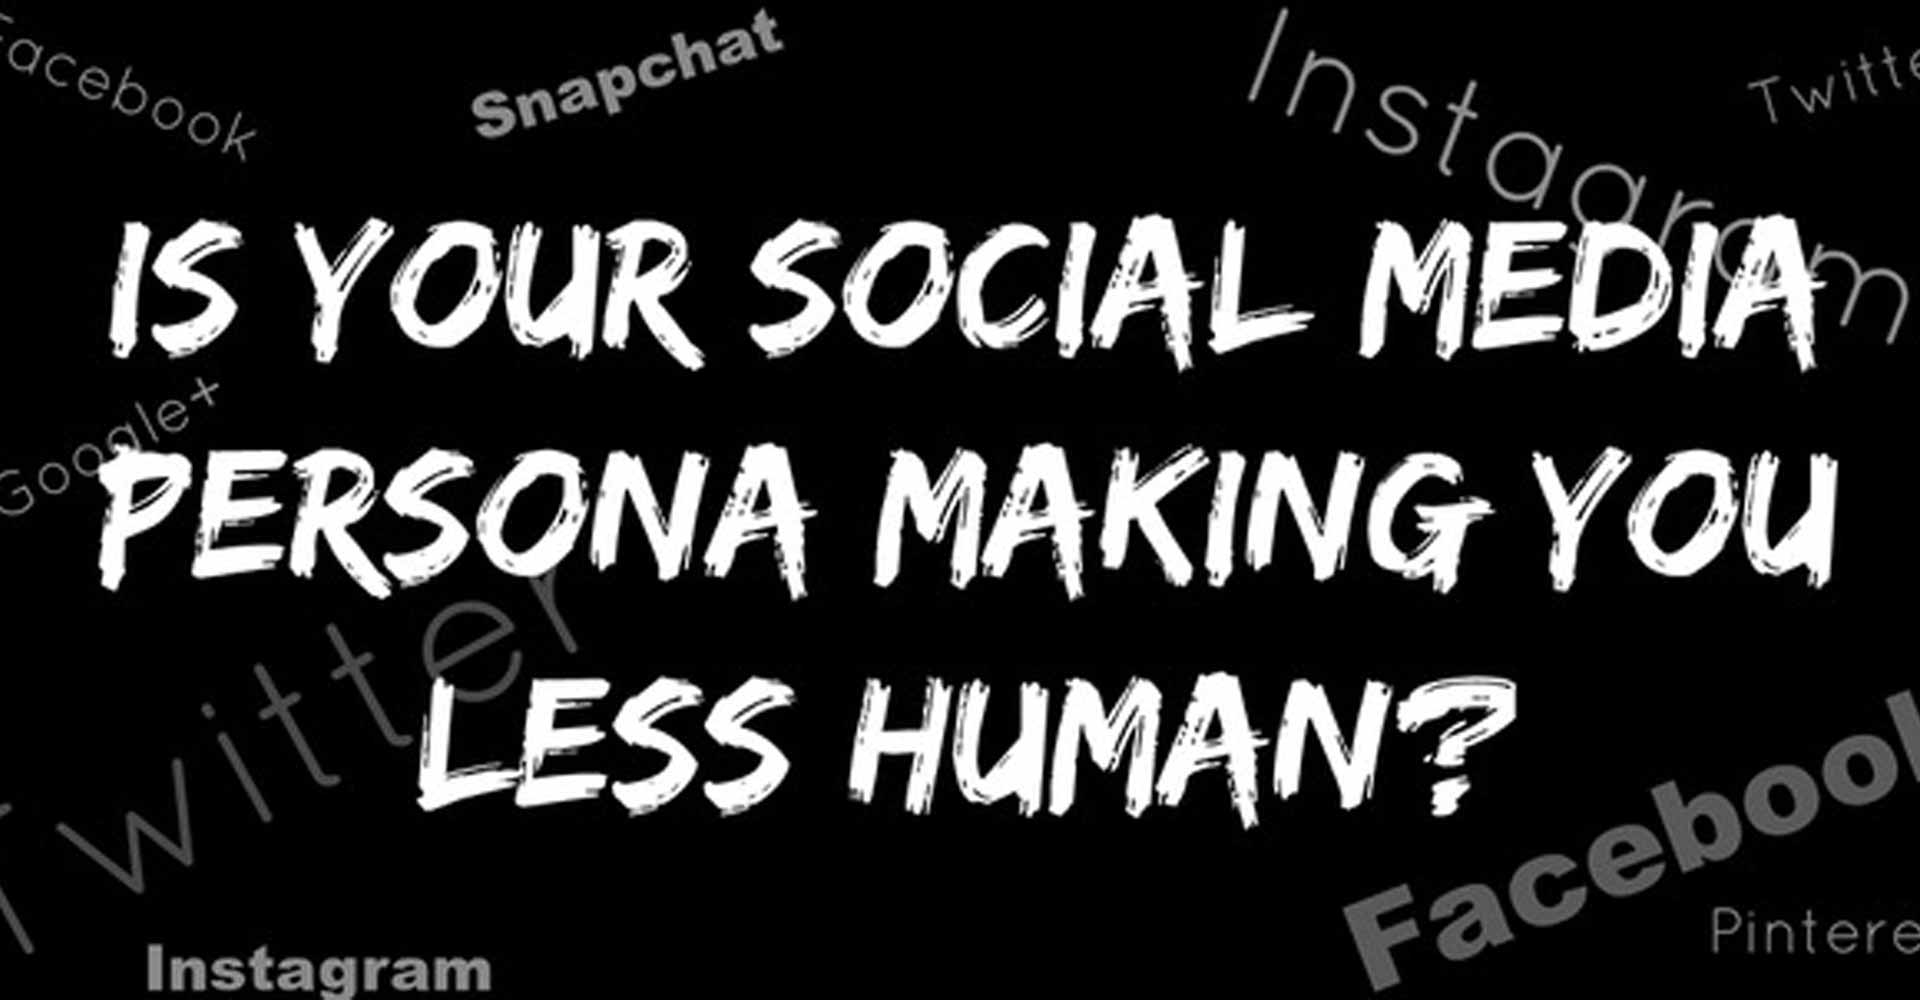 Does Social Media Make Us Less Human?